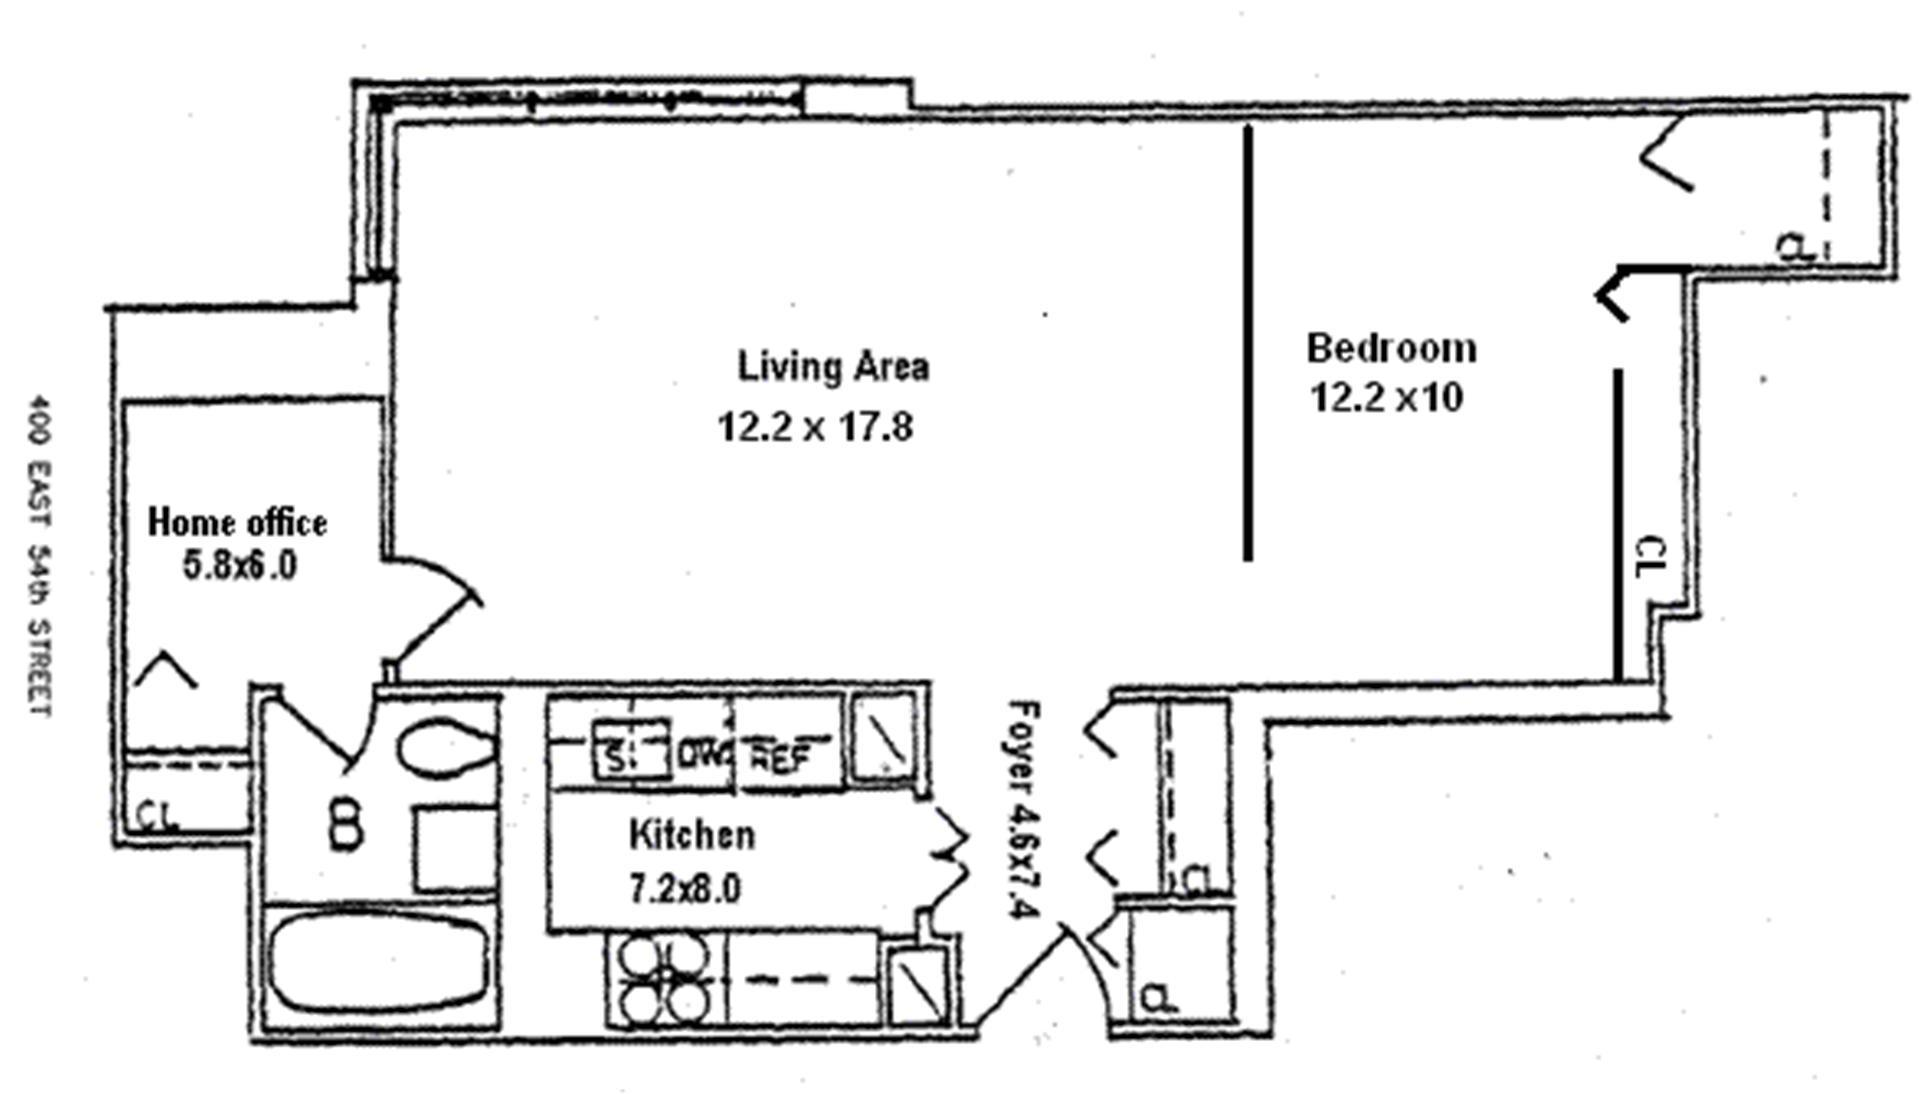 Floor plan of The Revere Condo, 400 East 54th Street, 30H - Sutton Area, New York